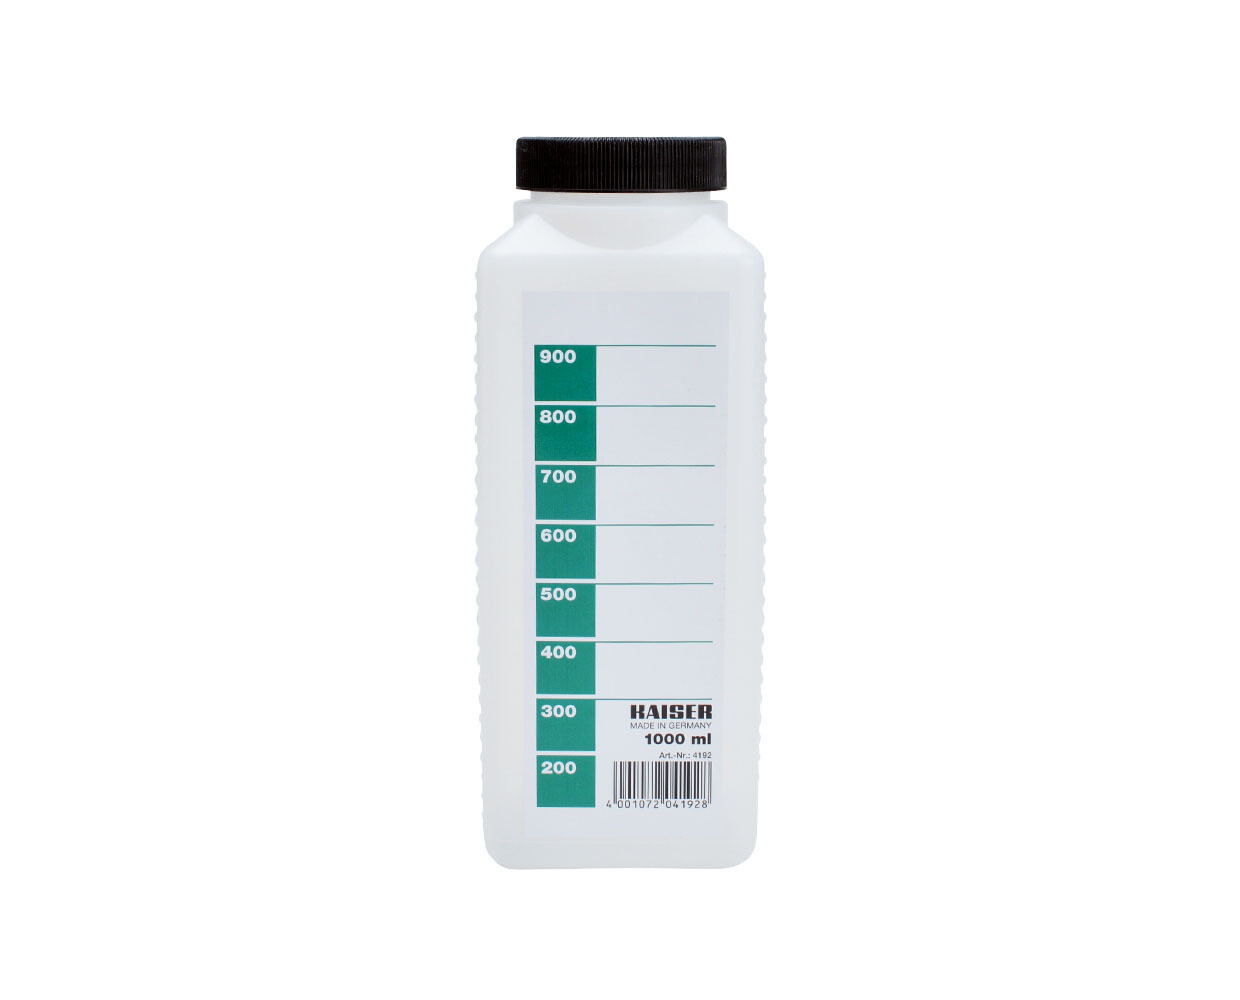 Kaiser chemical storage bottle white 1,000ml